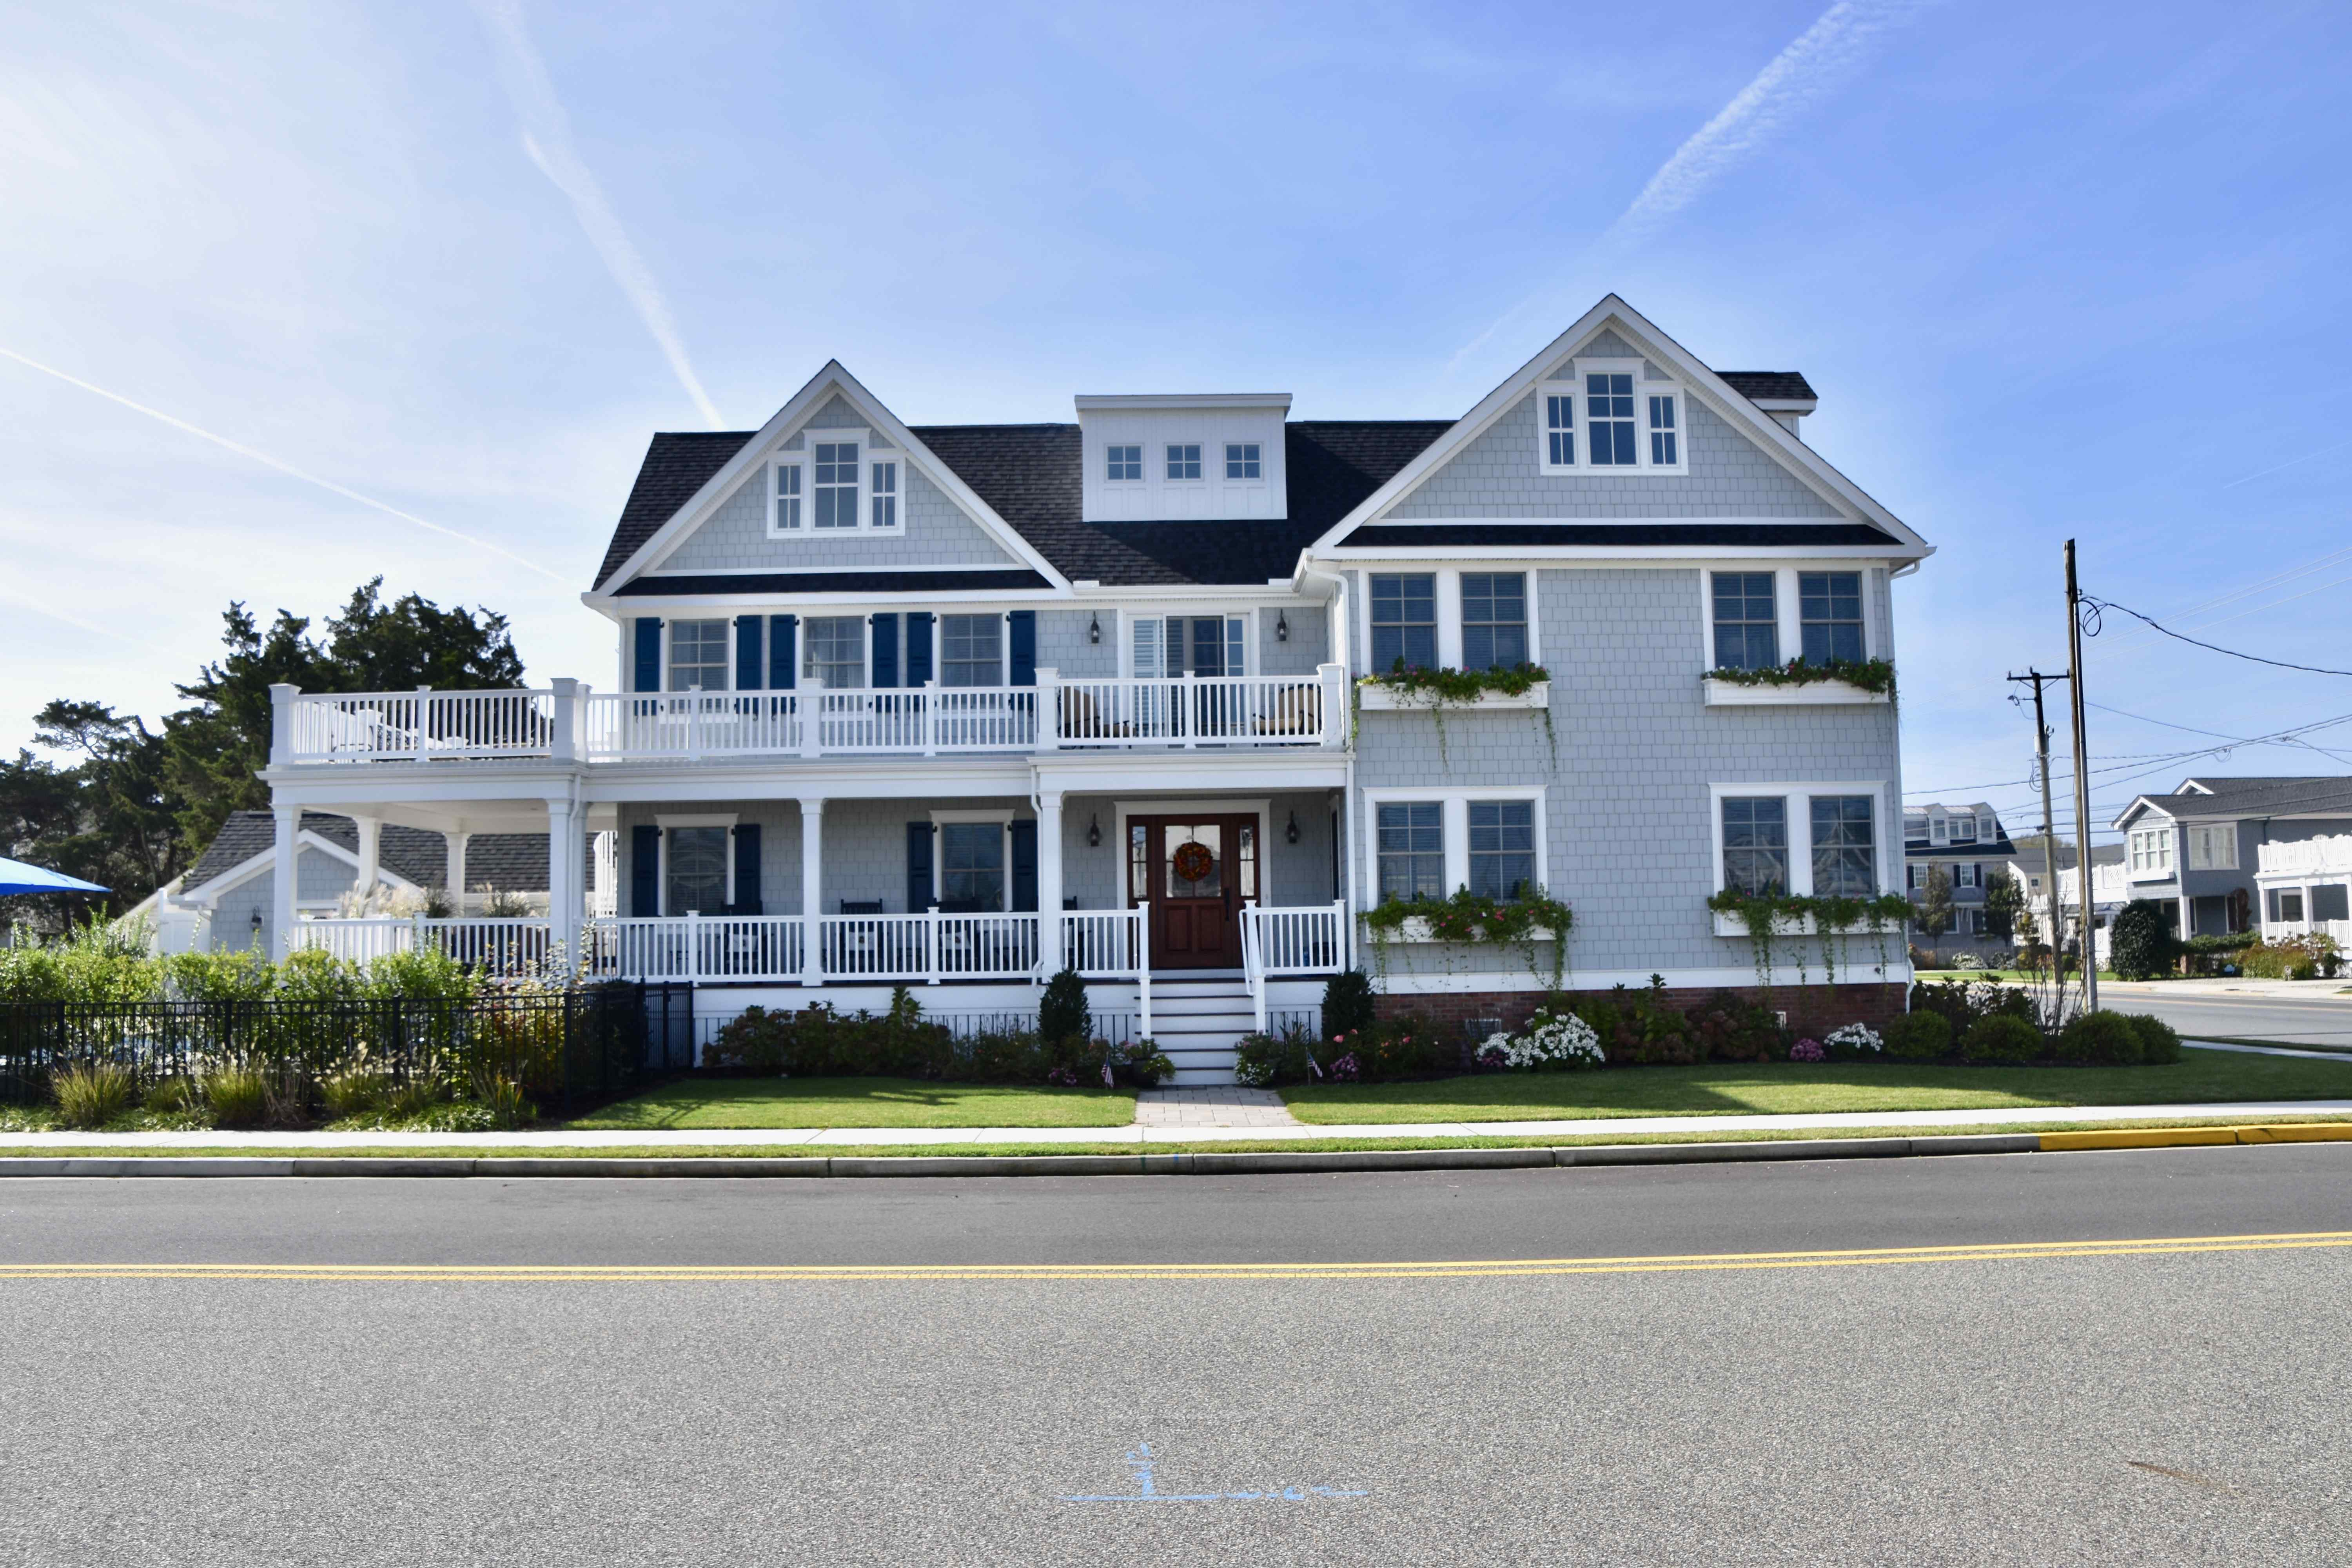 2619 First Avenue - Avalon, NJ